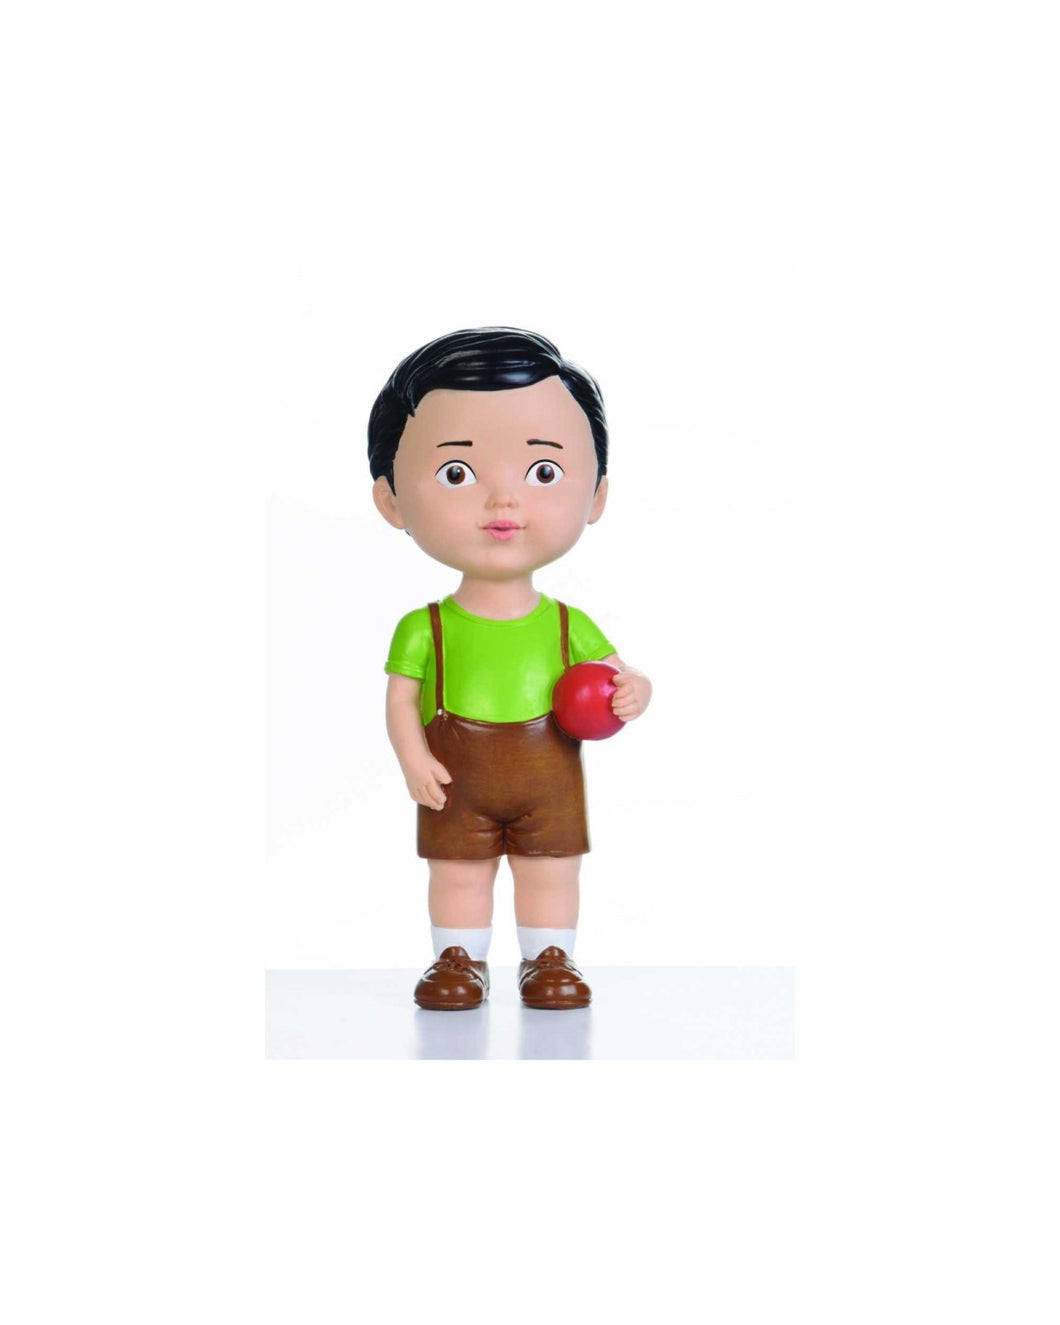 Black Hair Boy with Ball Doll